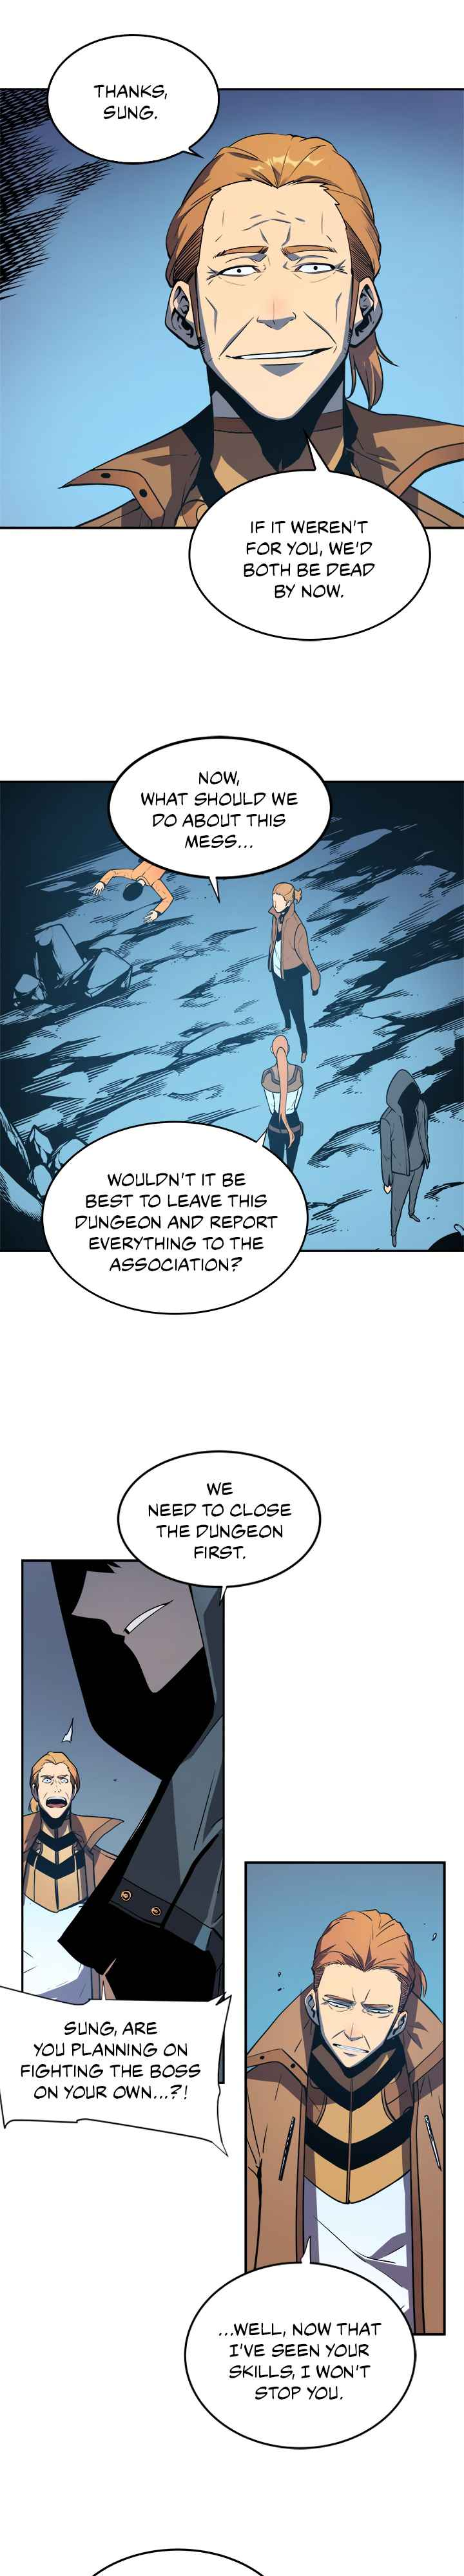 Solo Leveling Chapter 34 Page 10